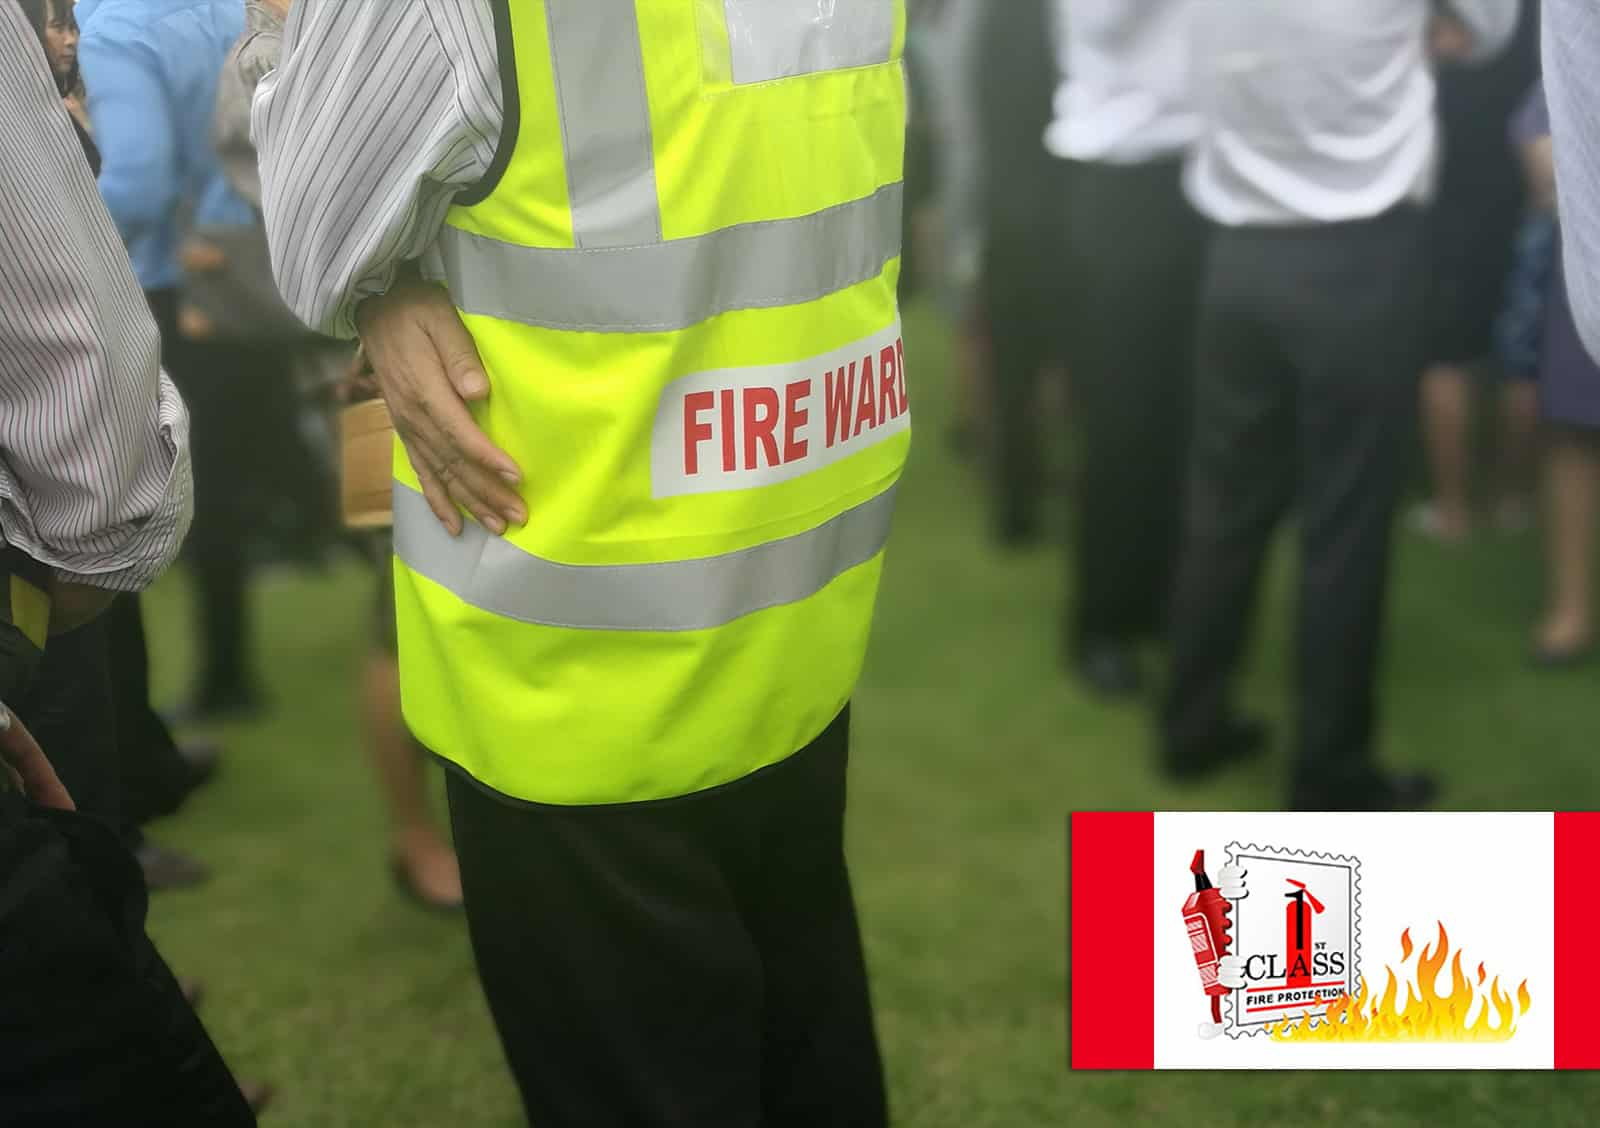 Fire Warden And Fire Marshall